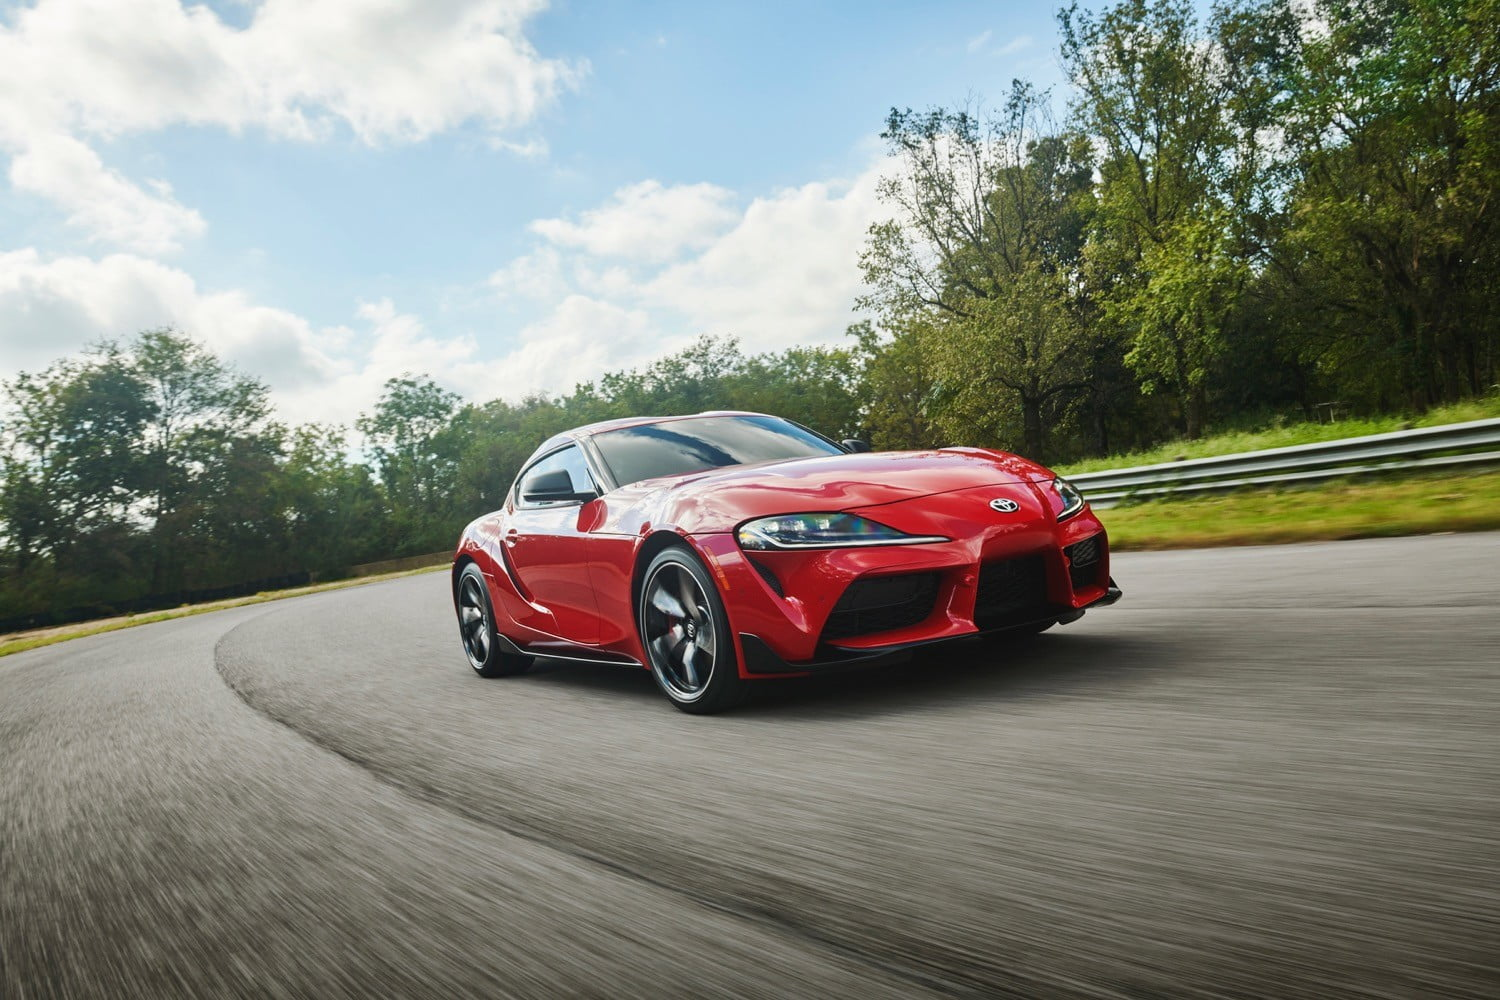 2020 Toyota Supra Online Configurator Is A Great Way To